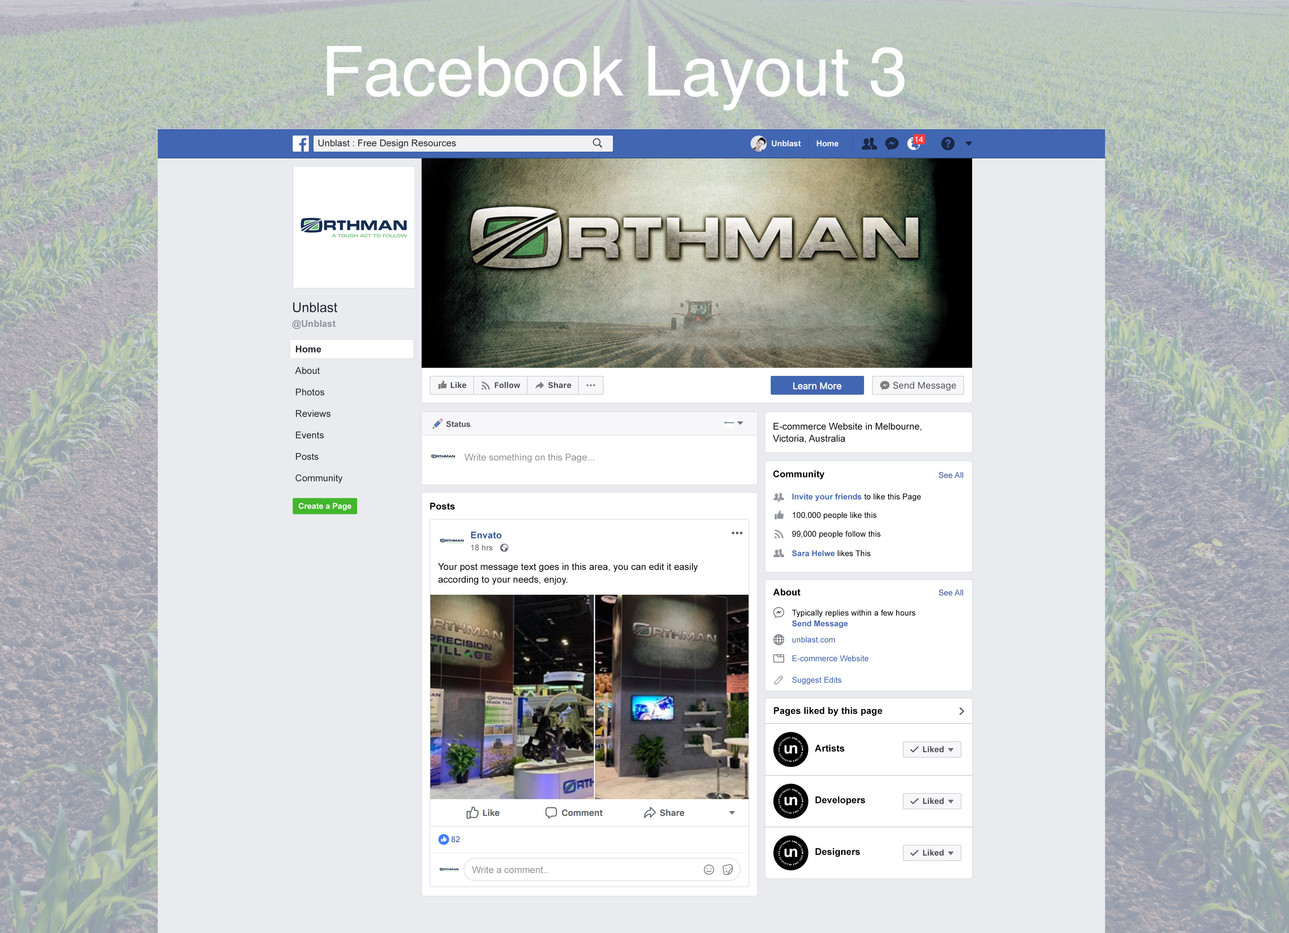 Facebook Layout 3.jpg